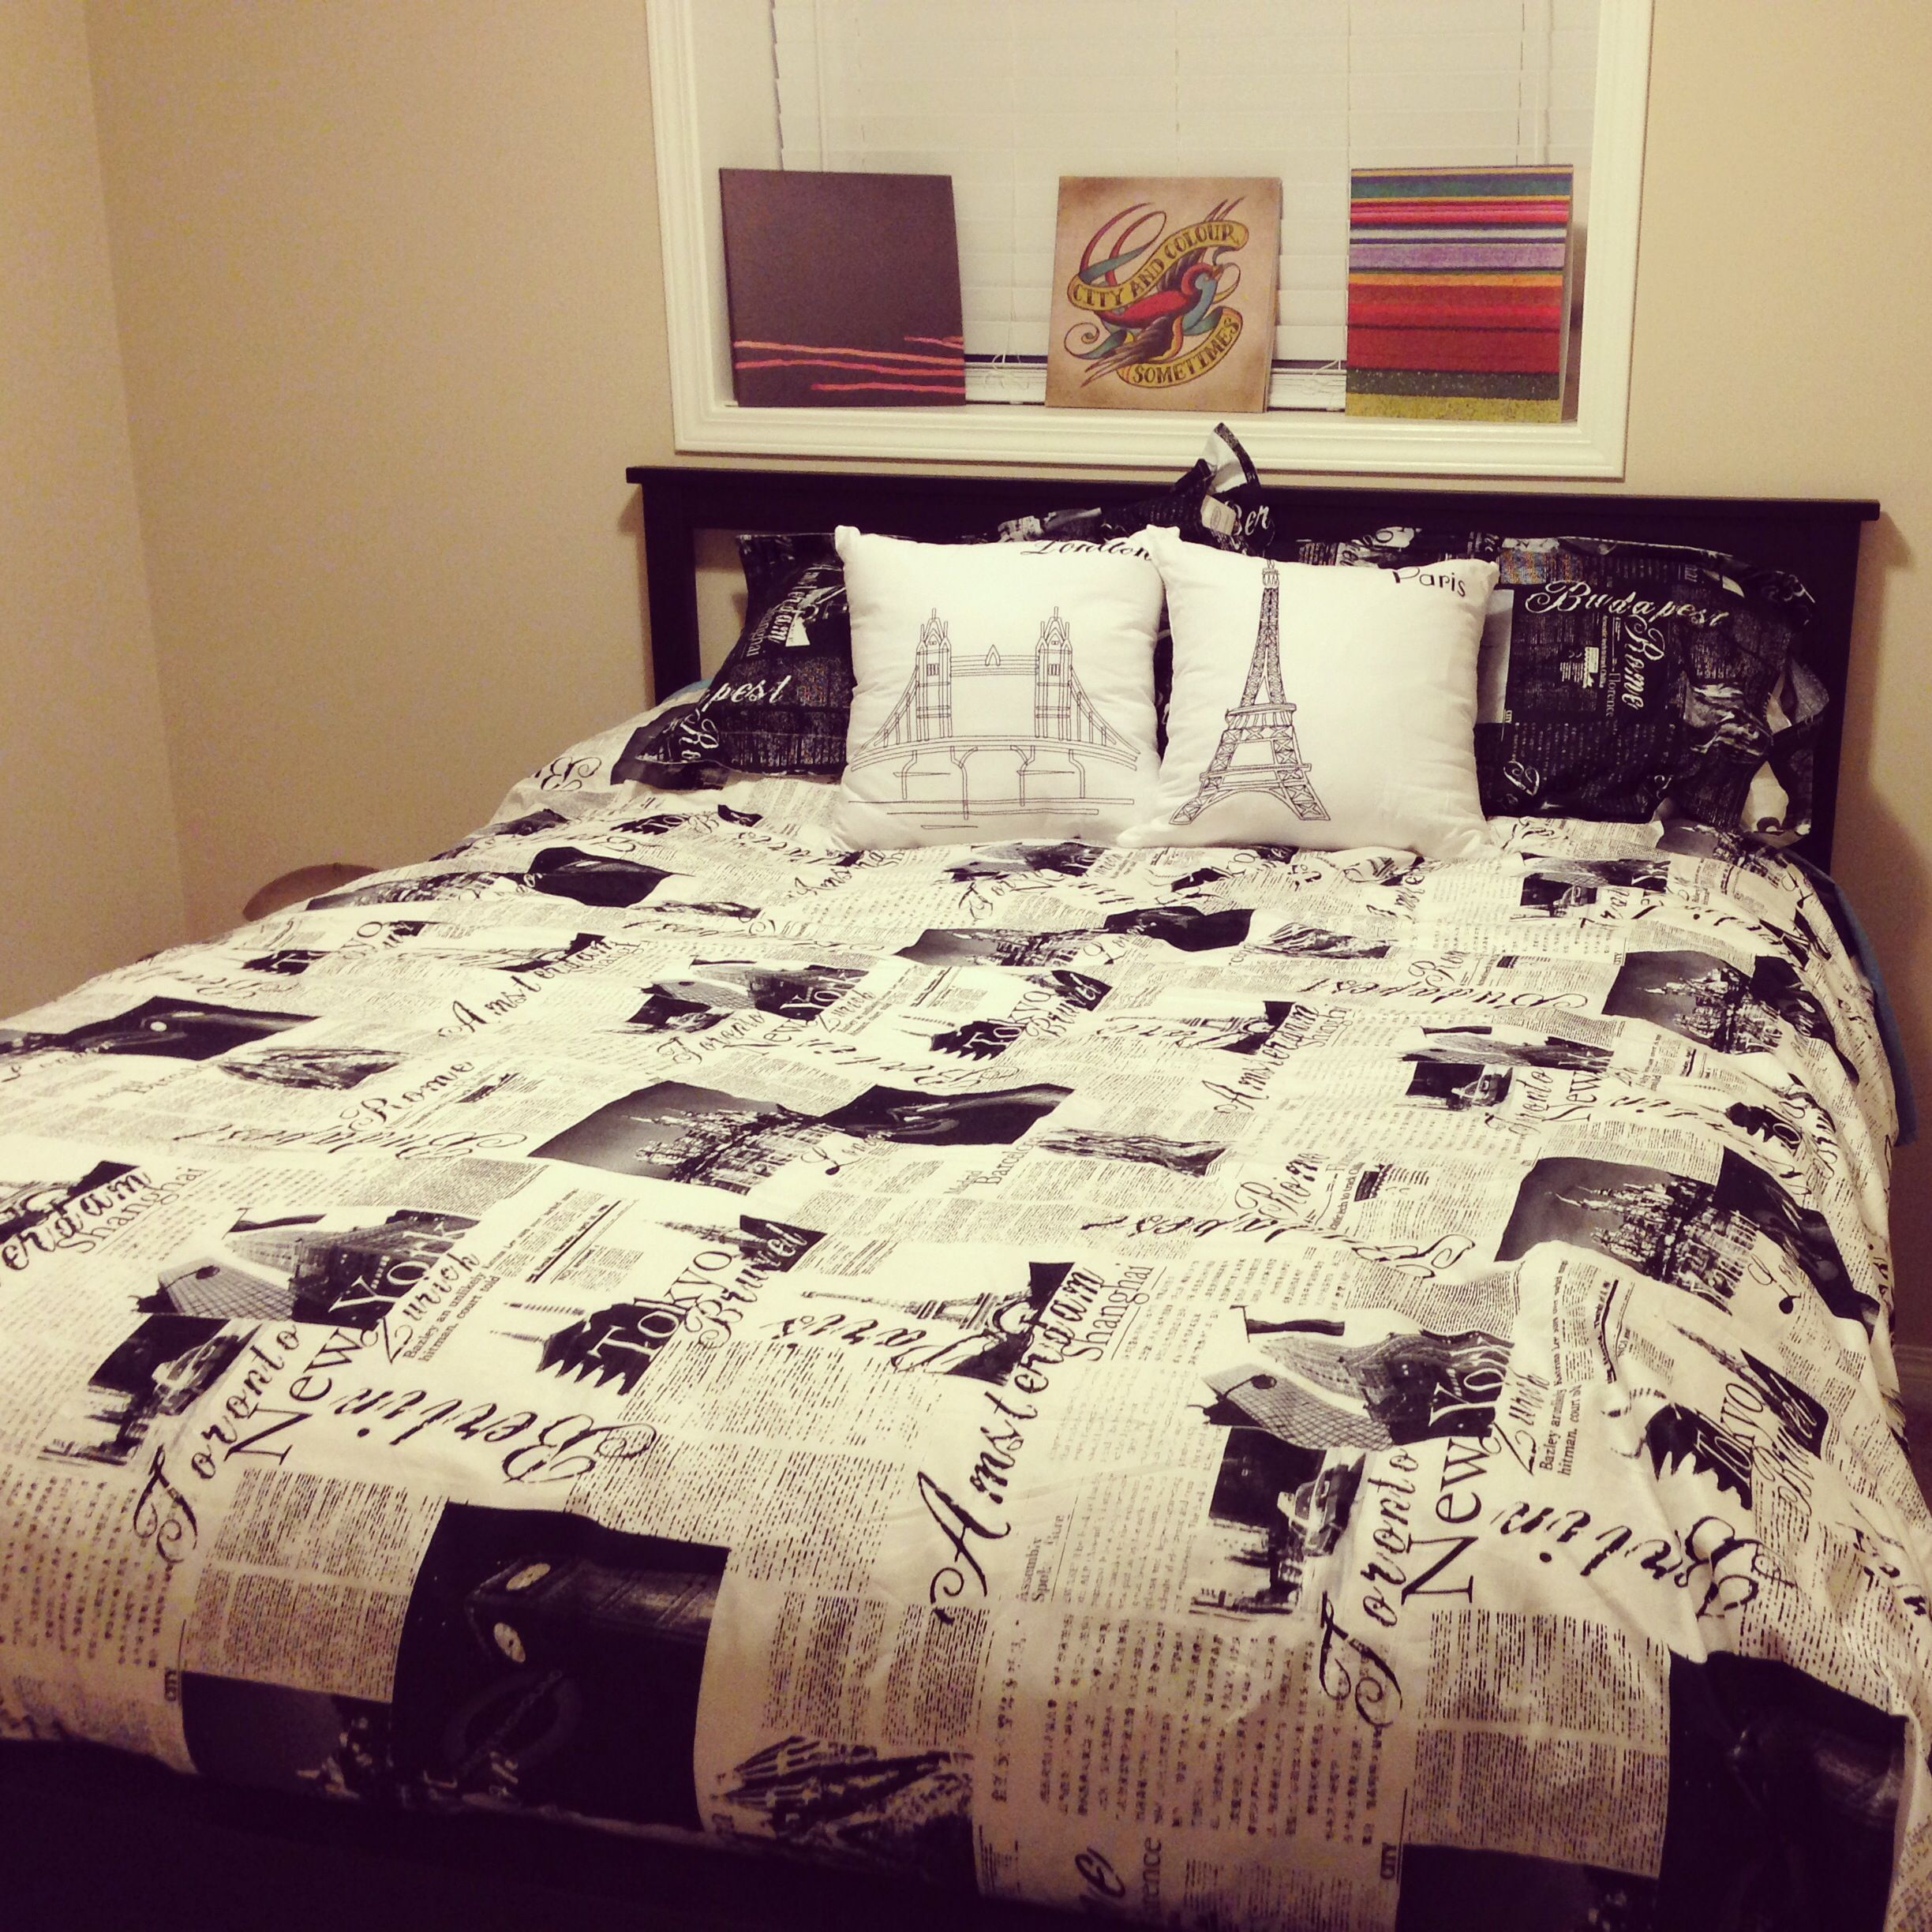 Passport around the world Duvet cover pillows from bed bath